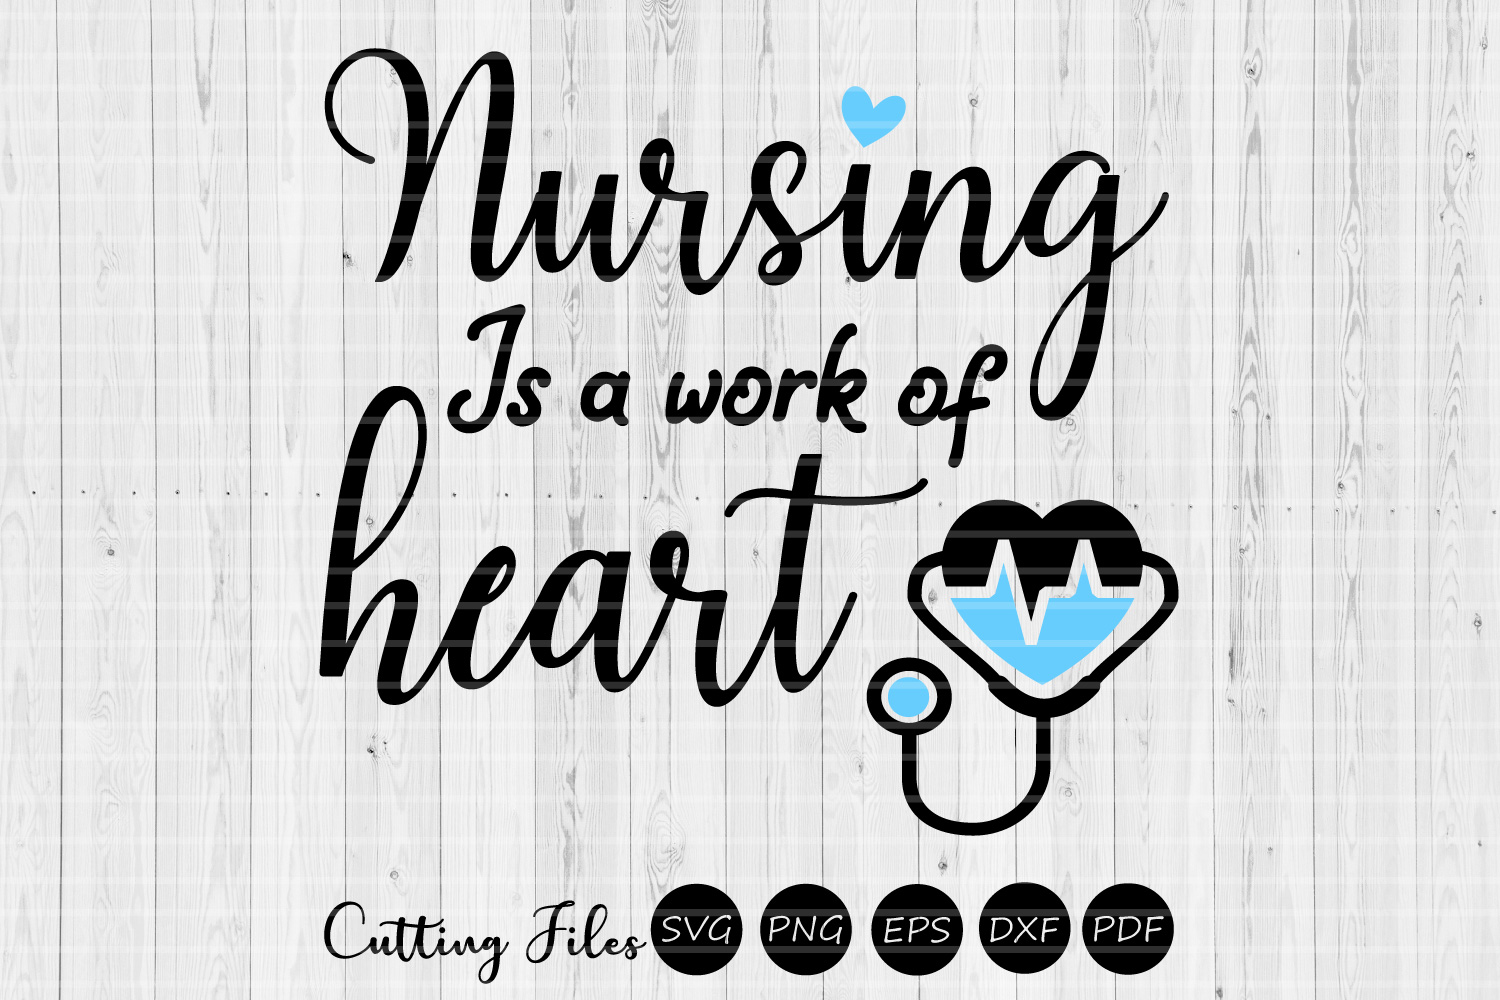 Download Free Nursing Is A Work Of Heart Nurse Svg Graphic By Hd Art Workshop for Cricut Explore, Silhouette and other cutting machines.